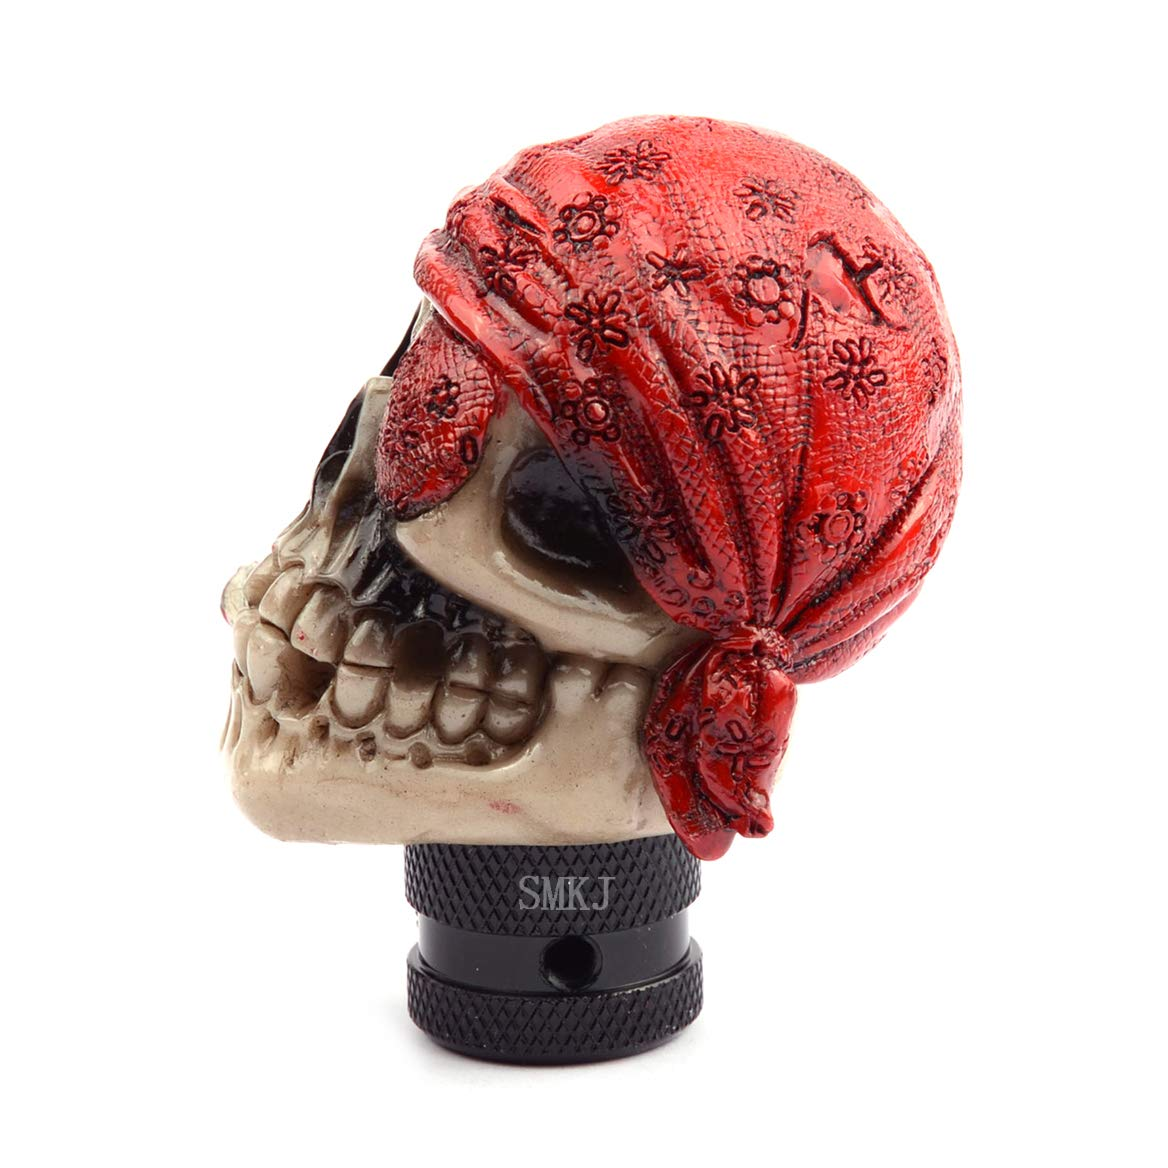 SMKJ One-eyed Skull Head Gear Stick Shift Shifter Knob Universal Shift Knob Fit for Manual Automatic Gear Stick Car Knobs Without Button or Lock red